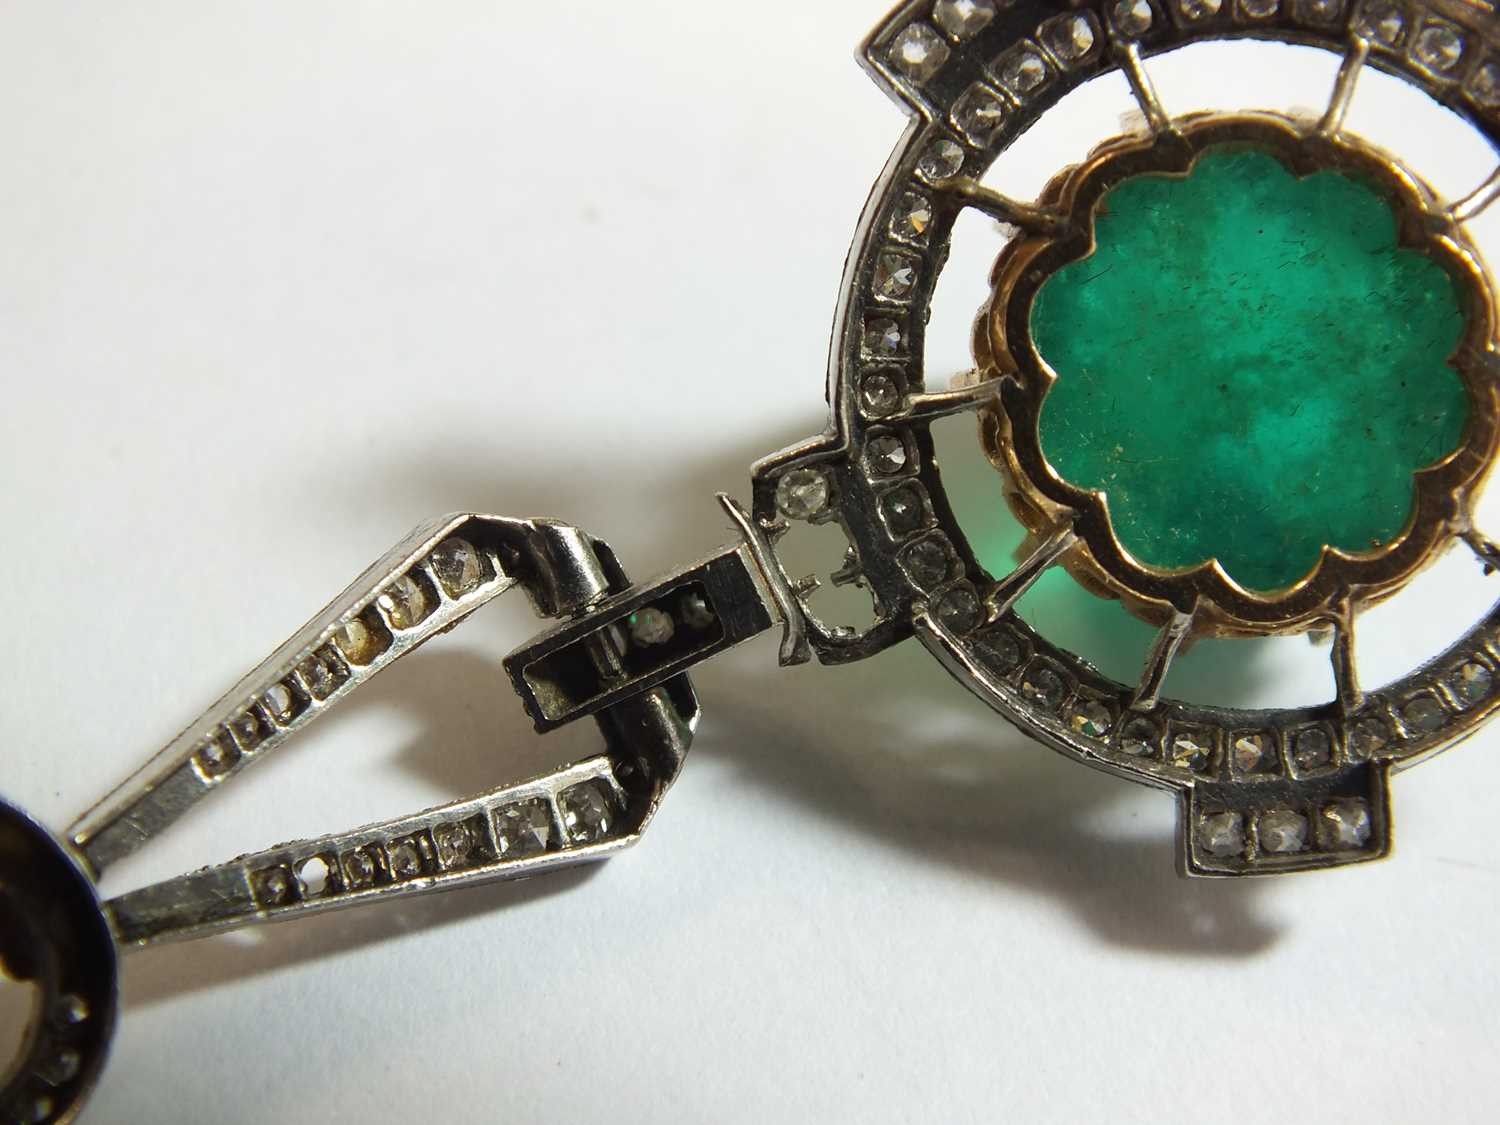 An Art Deco emerald and diamond pendant on chain - Image 7 of 14